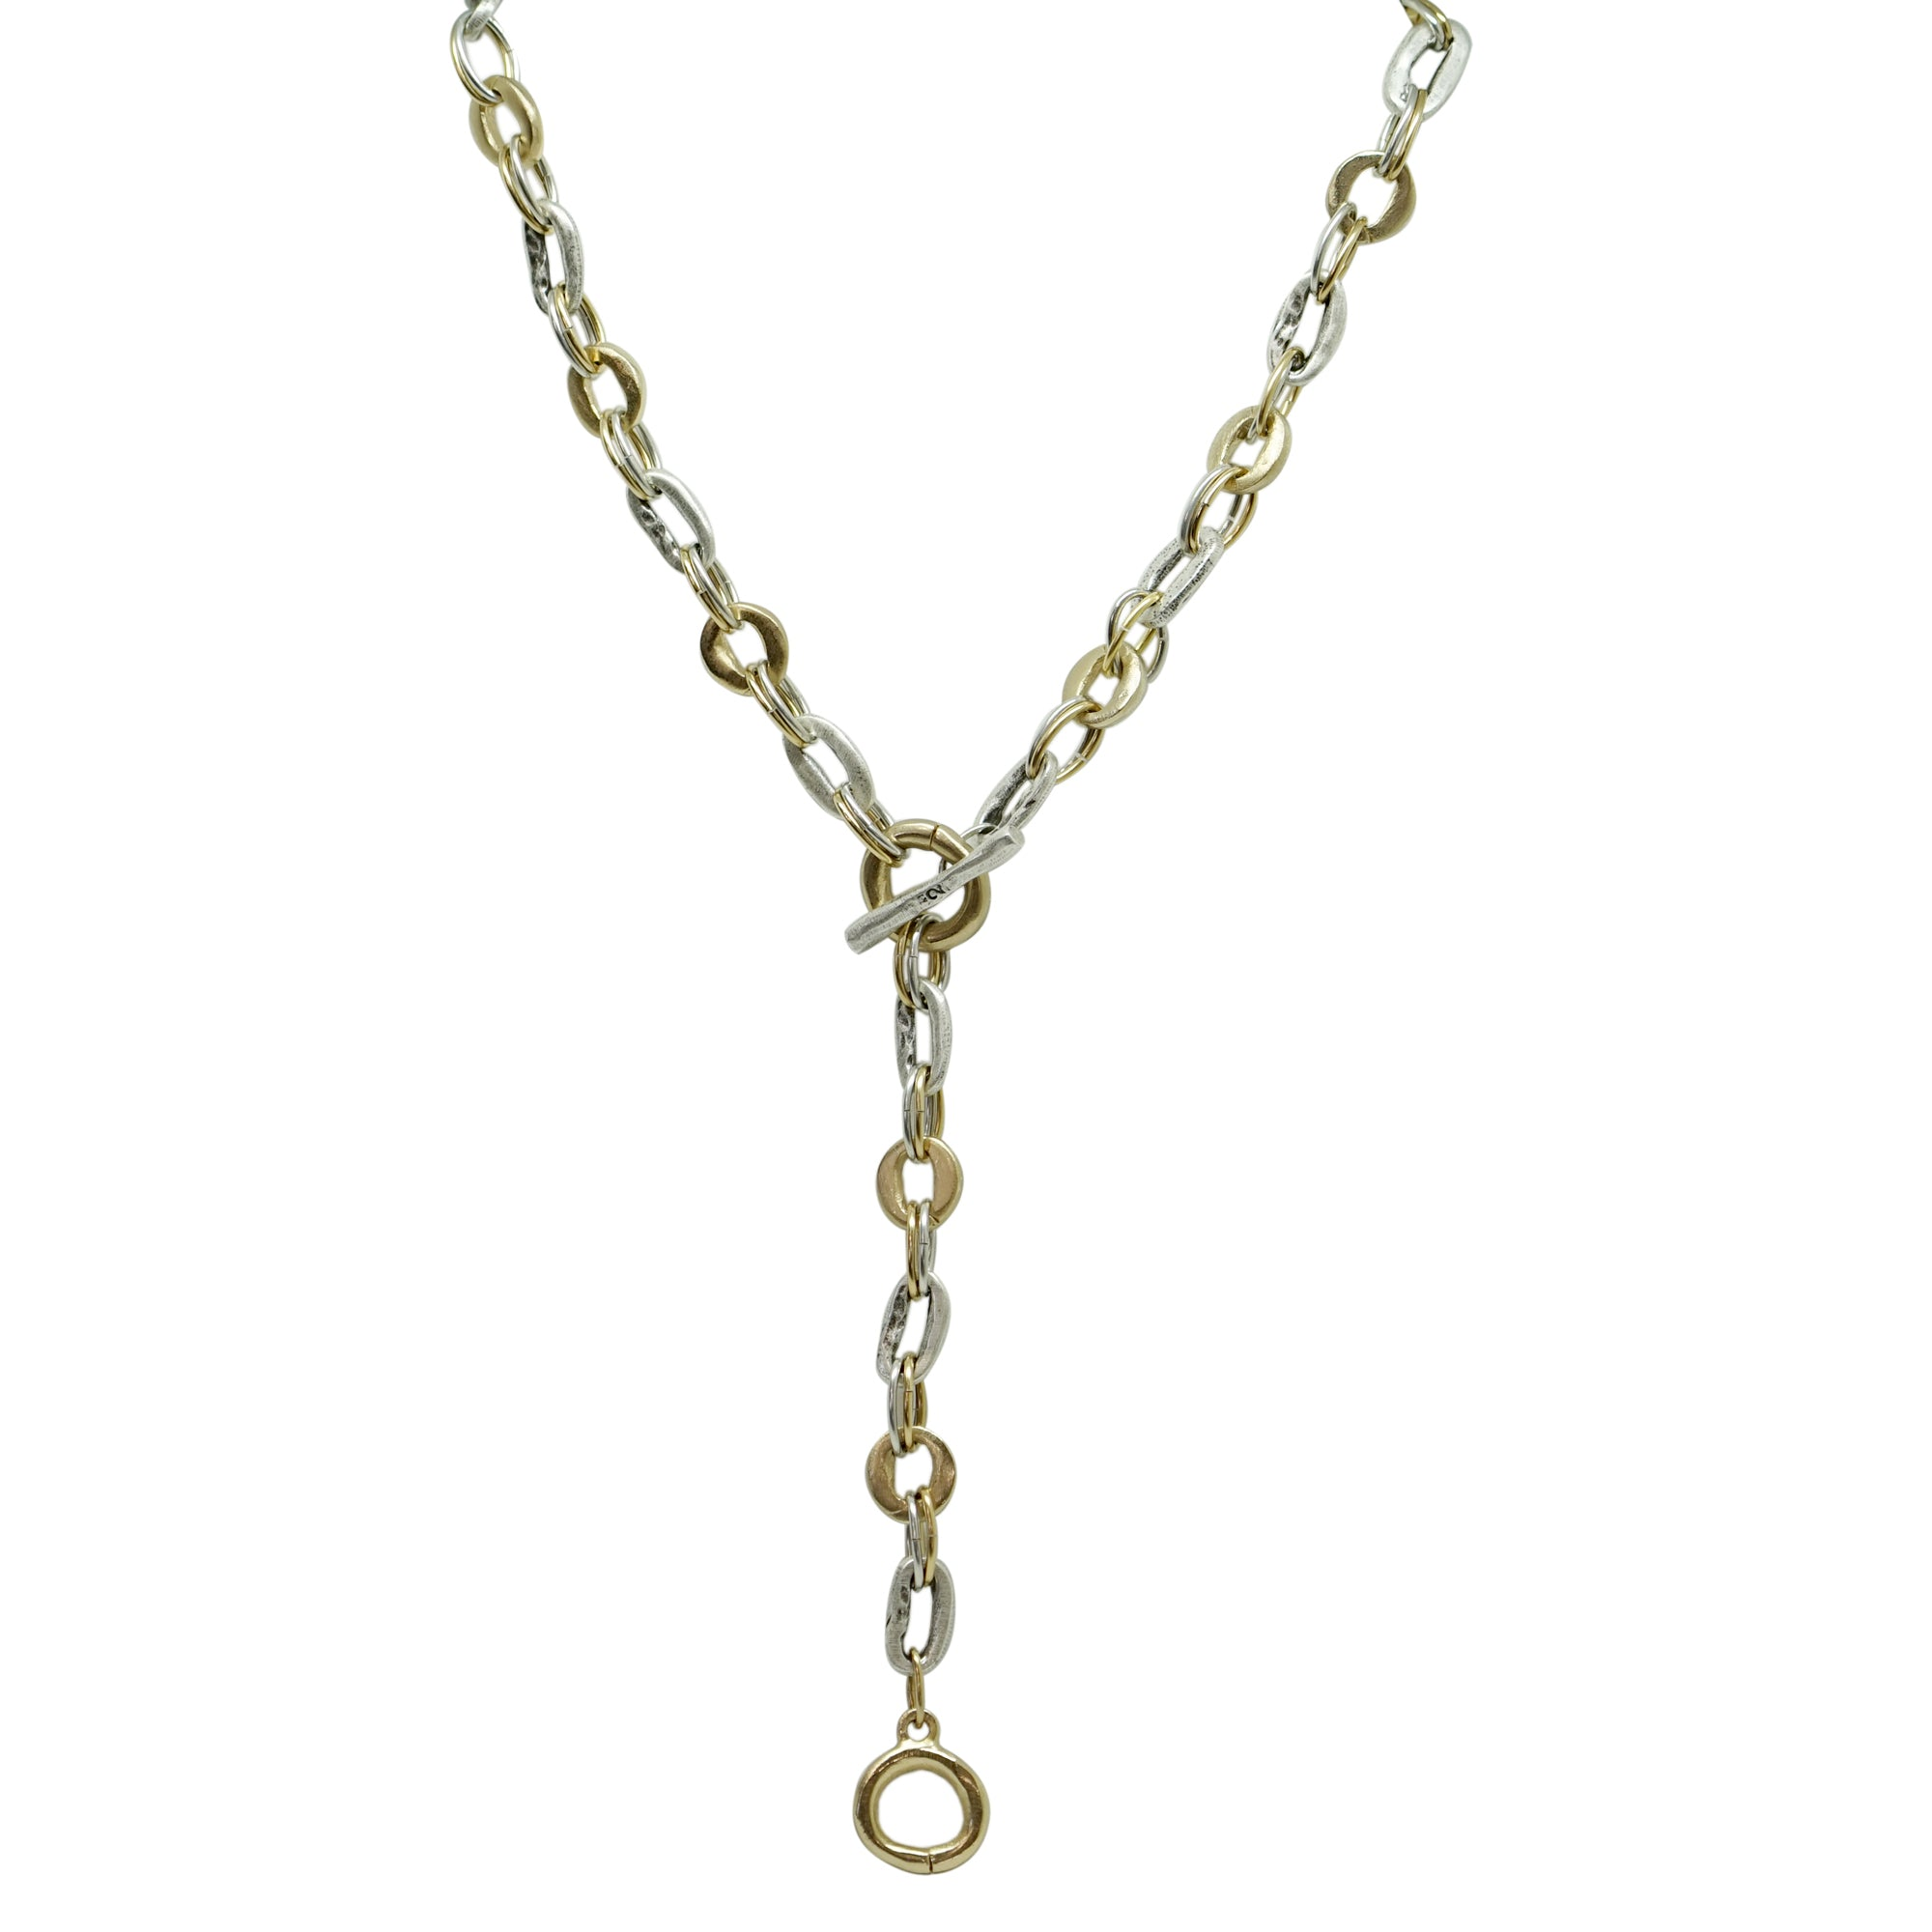 TWO TONE MINI LOOP LINK Y NECKLACE / 31""